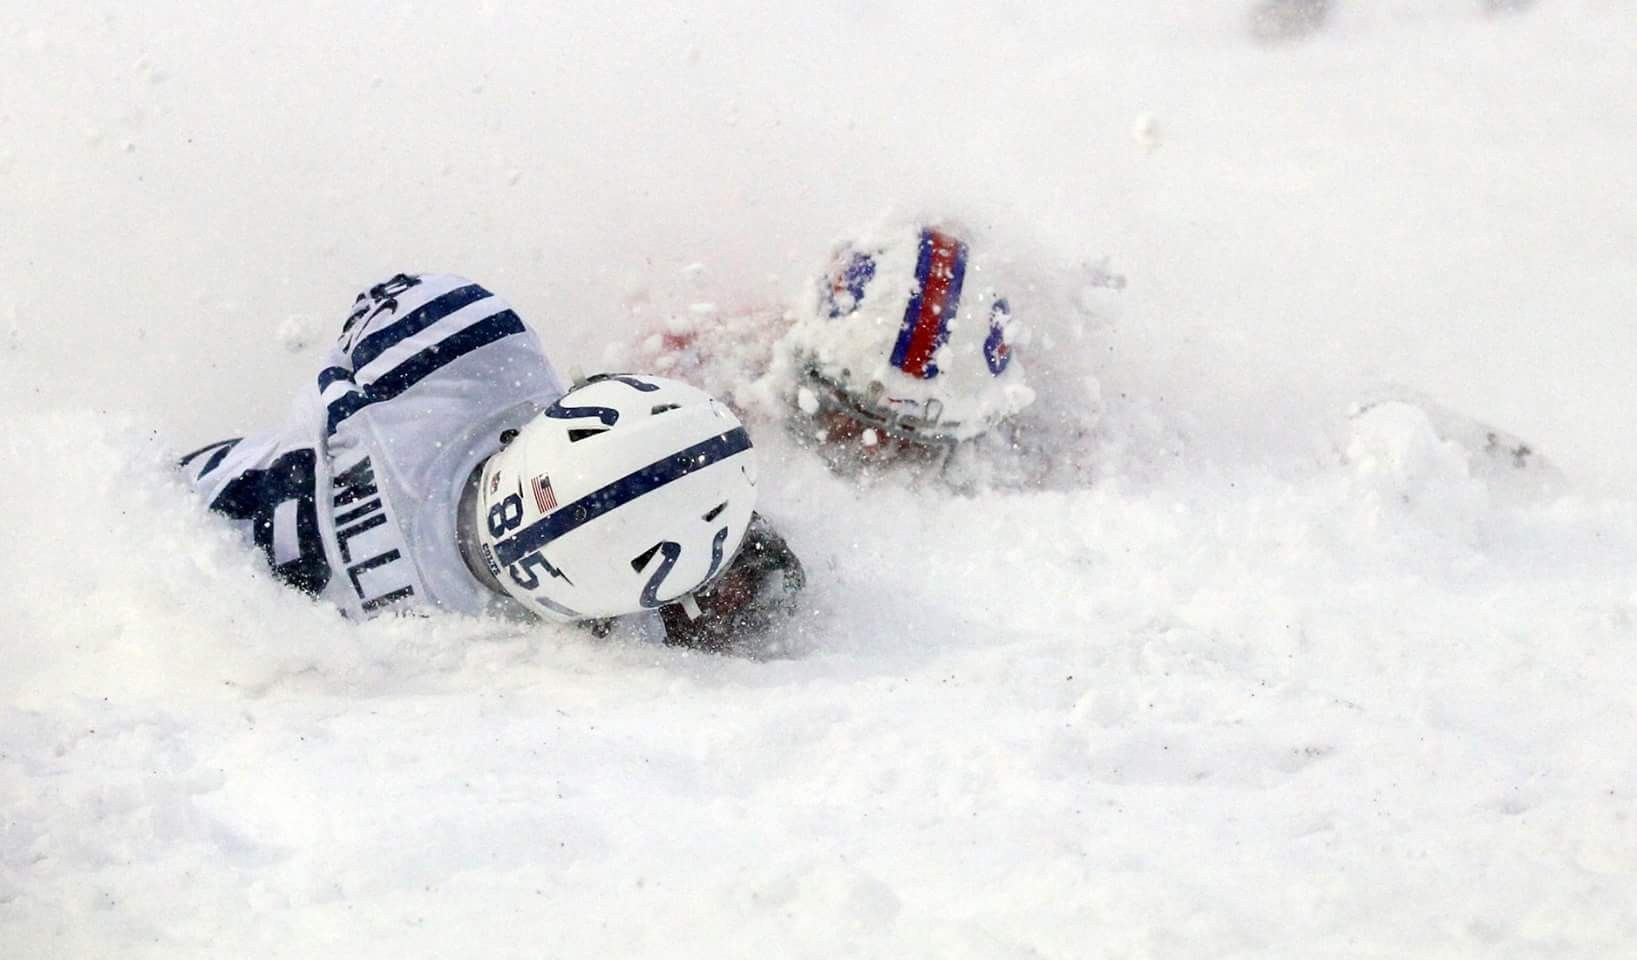 Buffalo Bills Vs Indianapolis Colts On Sunday 12 10 2017 Bills Win In Double Overtime In A Snow Storm Colts Football Buffalo Bills Bills